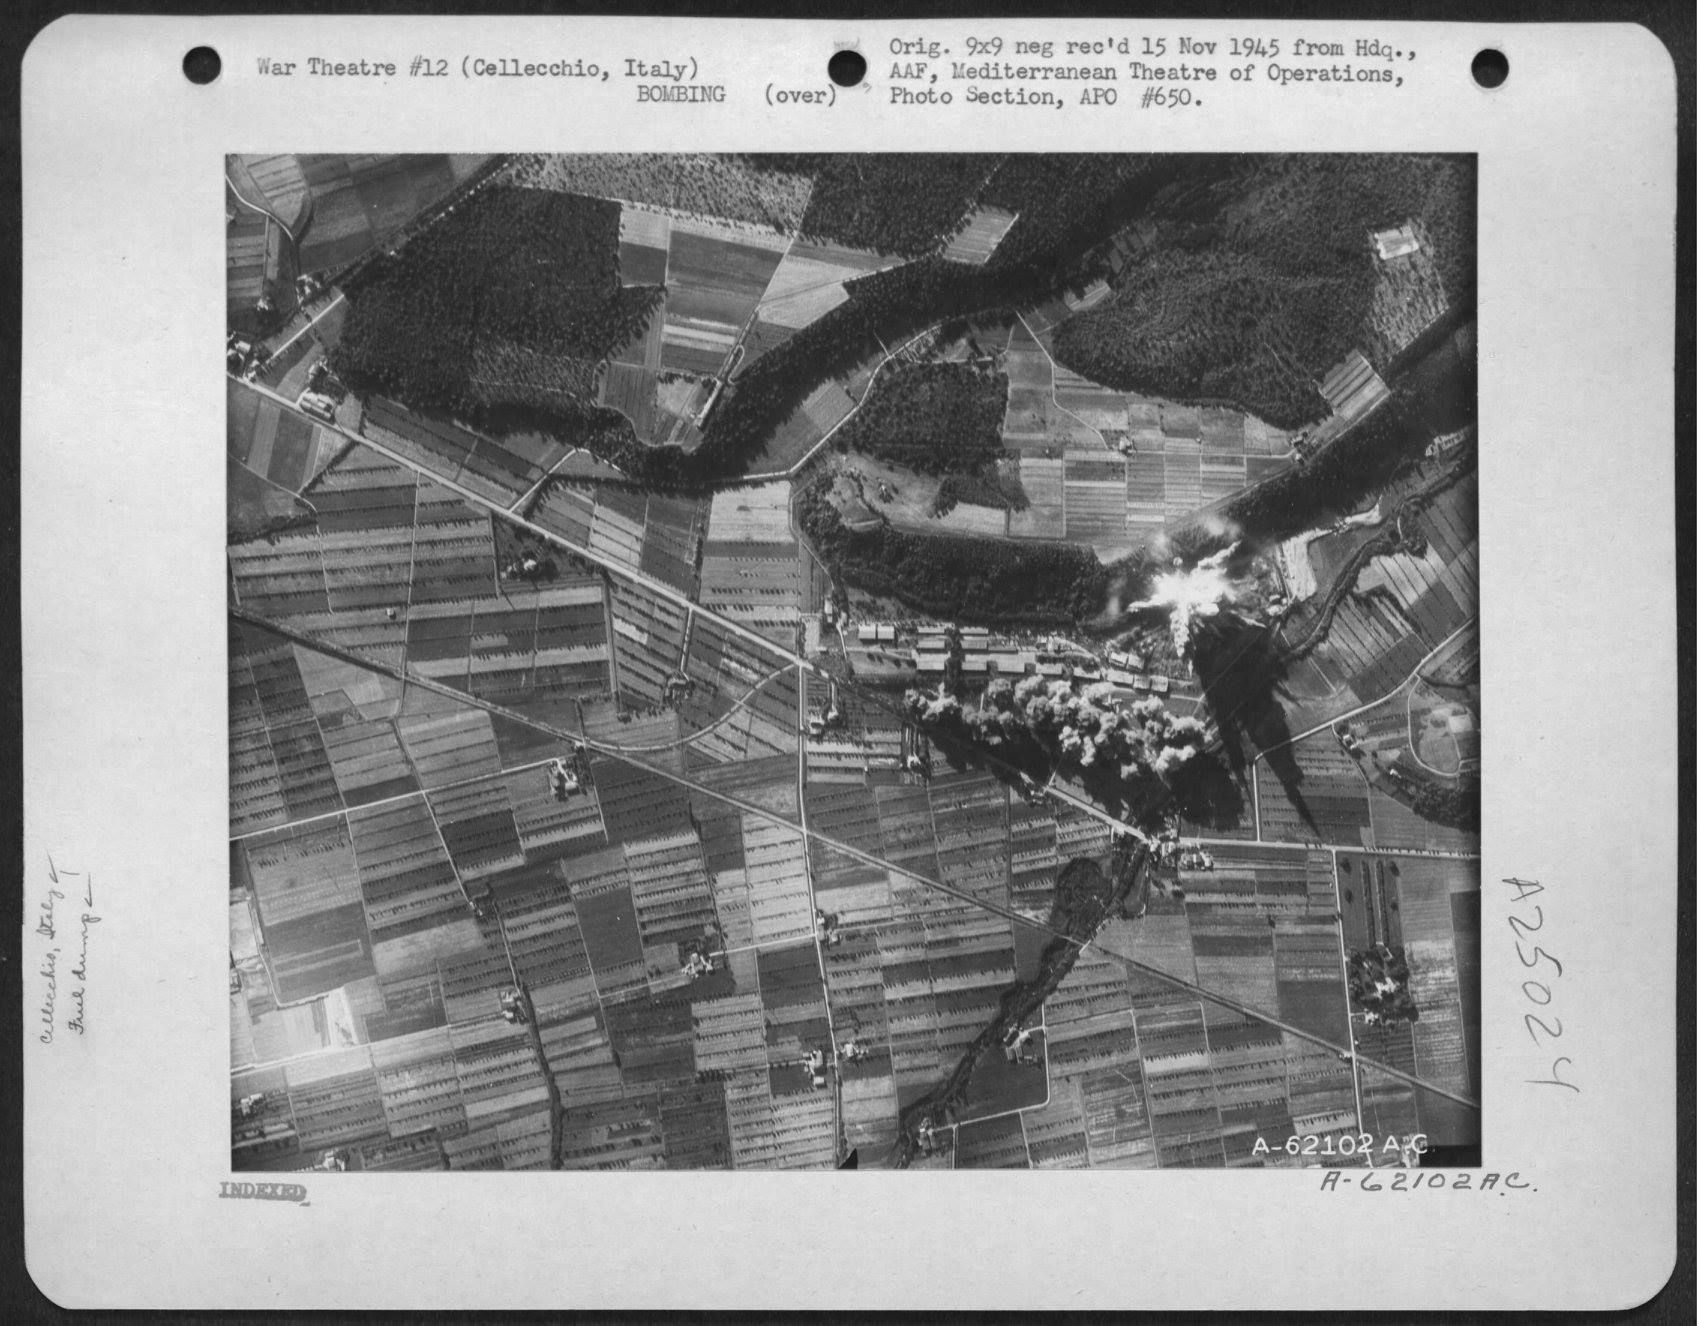 USAAF B 26 Marauders with pin point accuracy hit the Storage Dumps nr Cellecchio Italy 7 Jul 1944 02